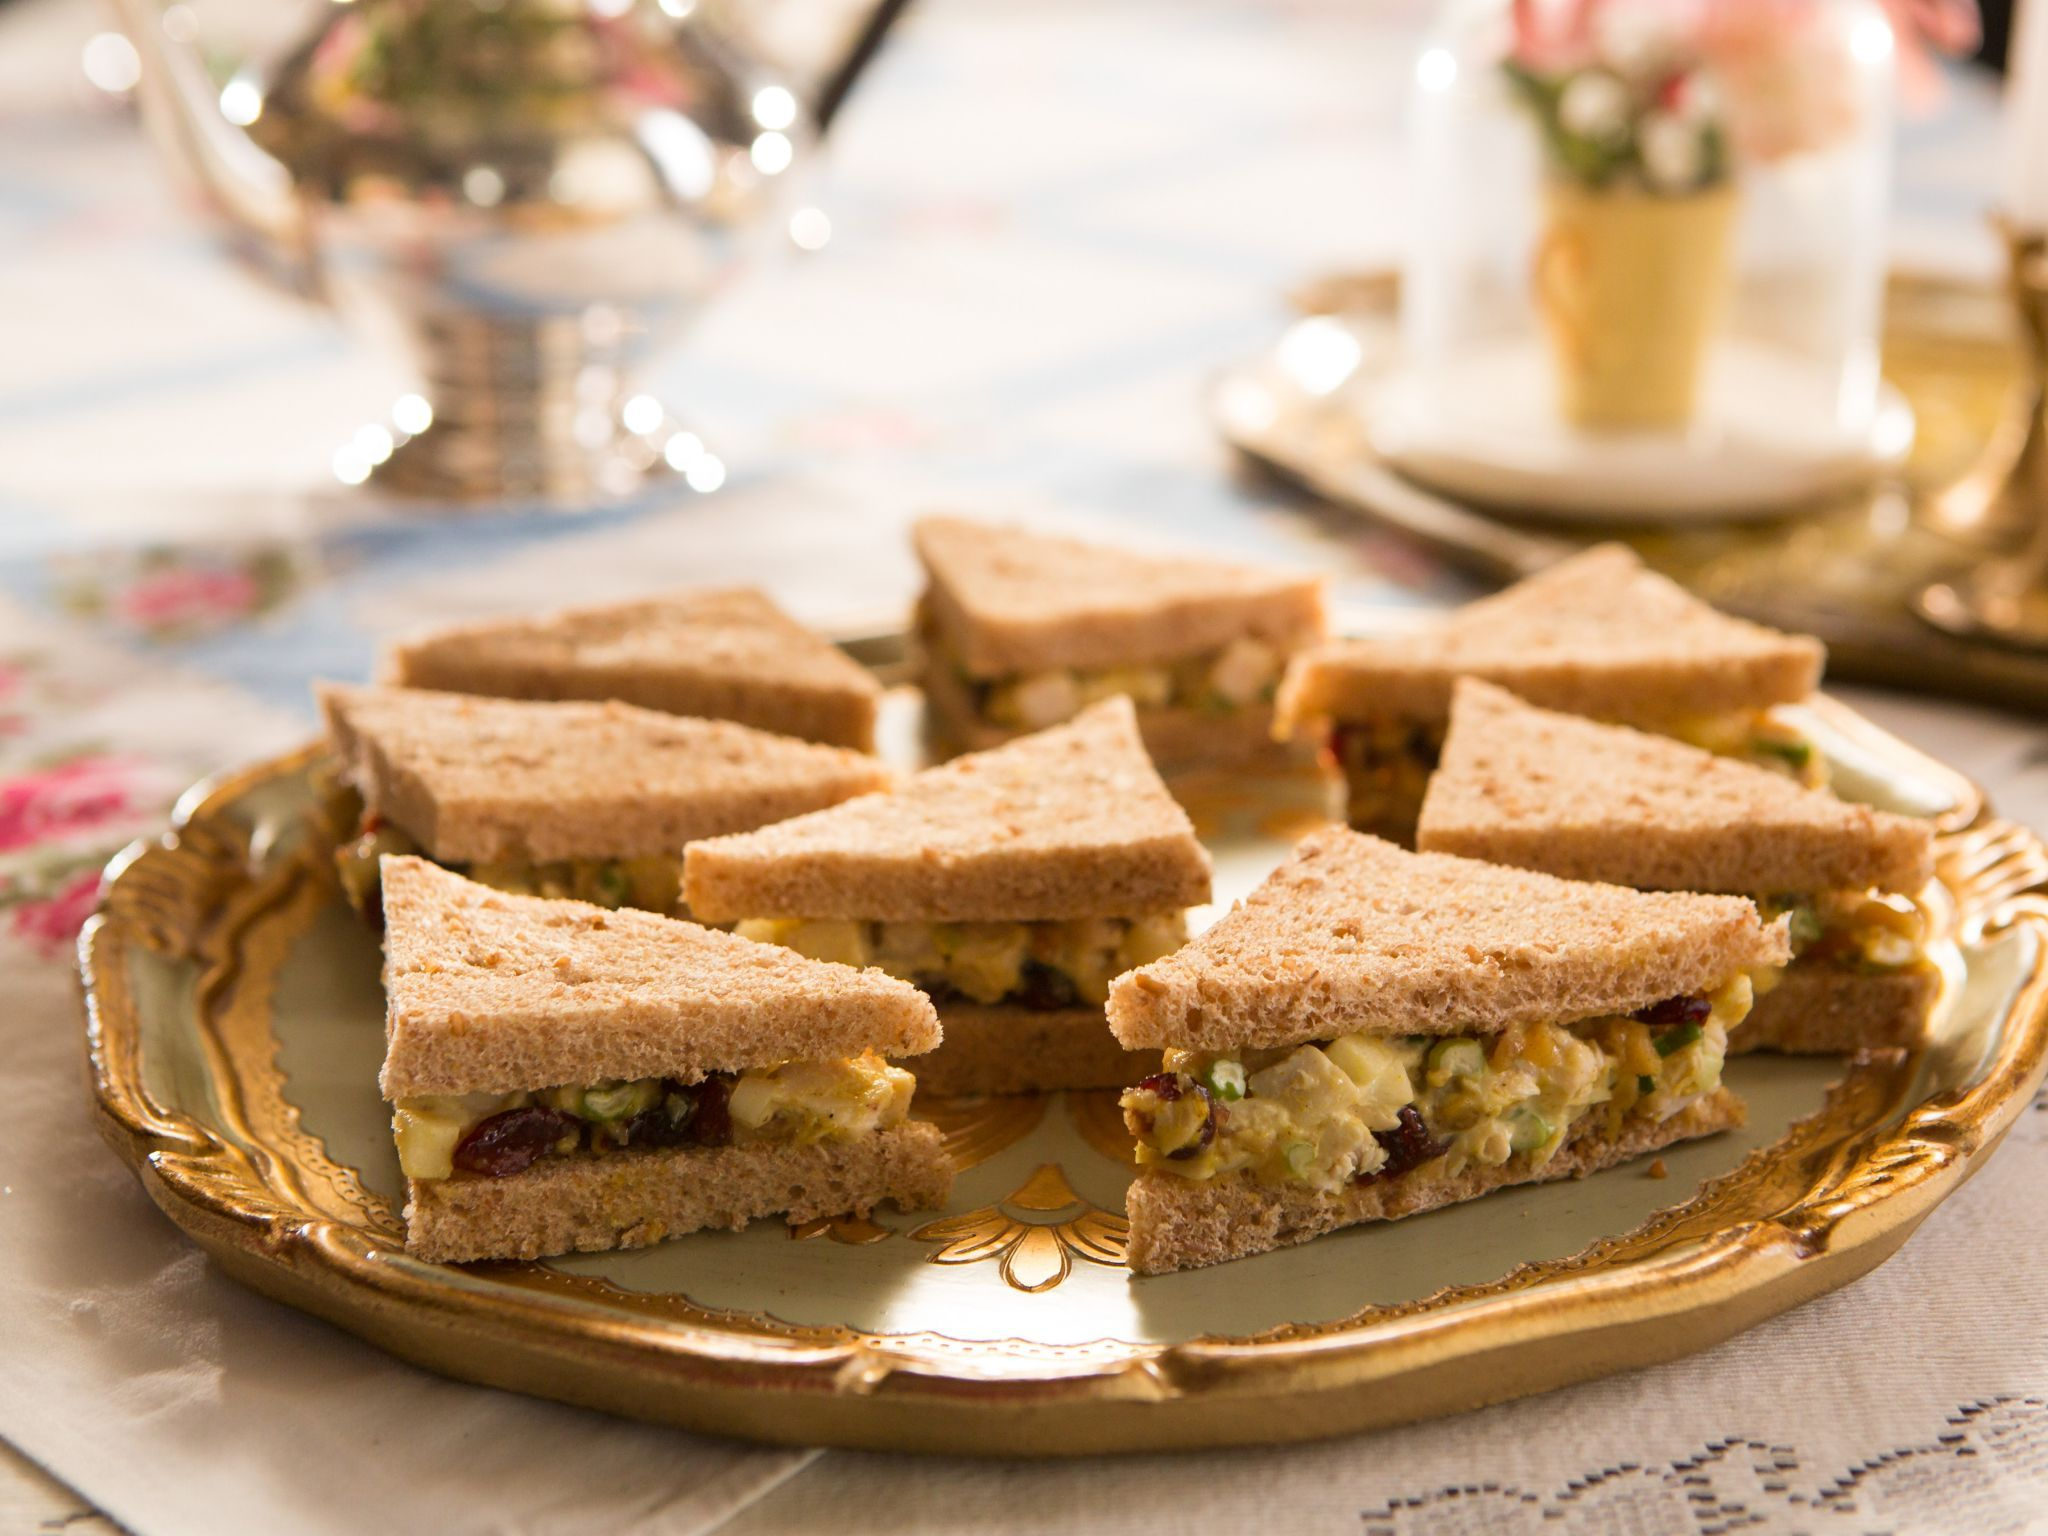 Curried chicken salad tea sandwiches receta aperitivos entrada curried chicken salad tea sandwiches receta aperitivos entrada y madres forumfinder Choice Image